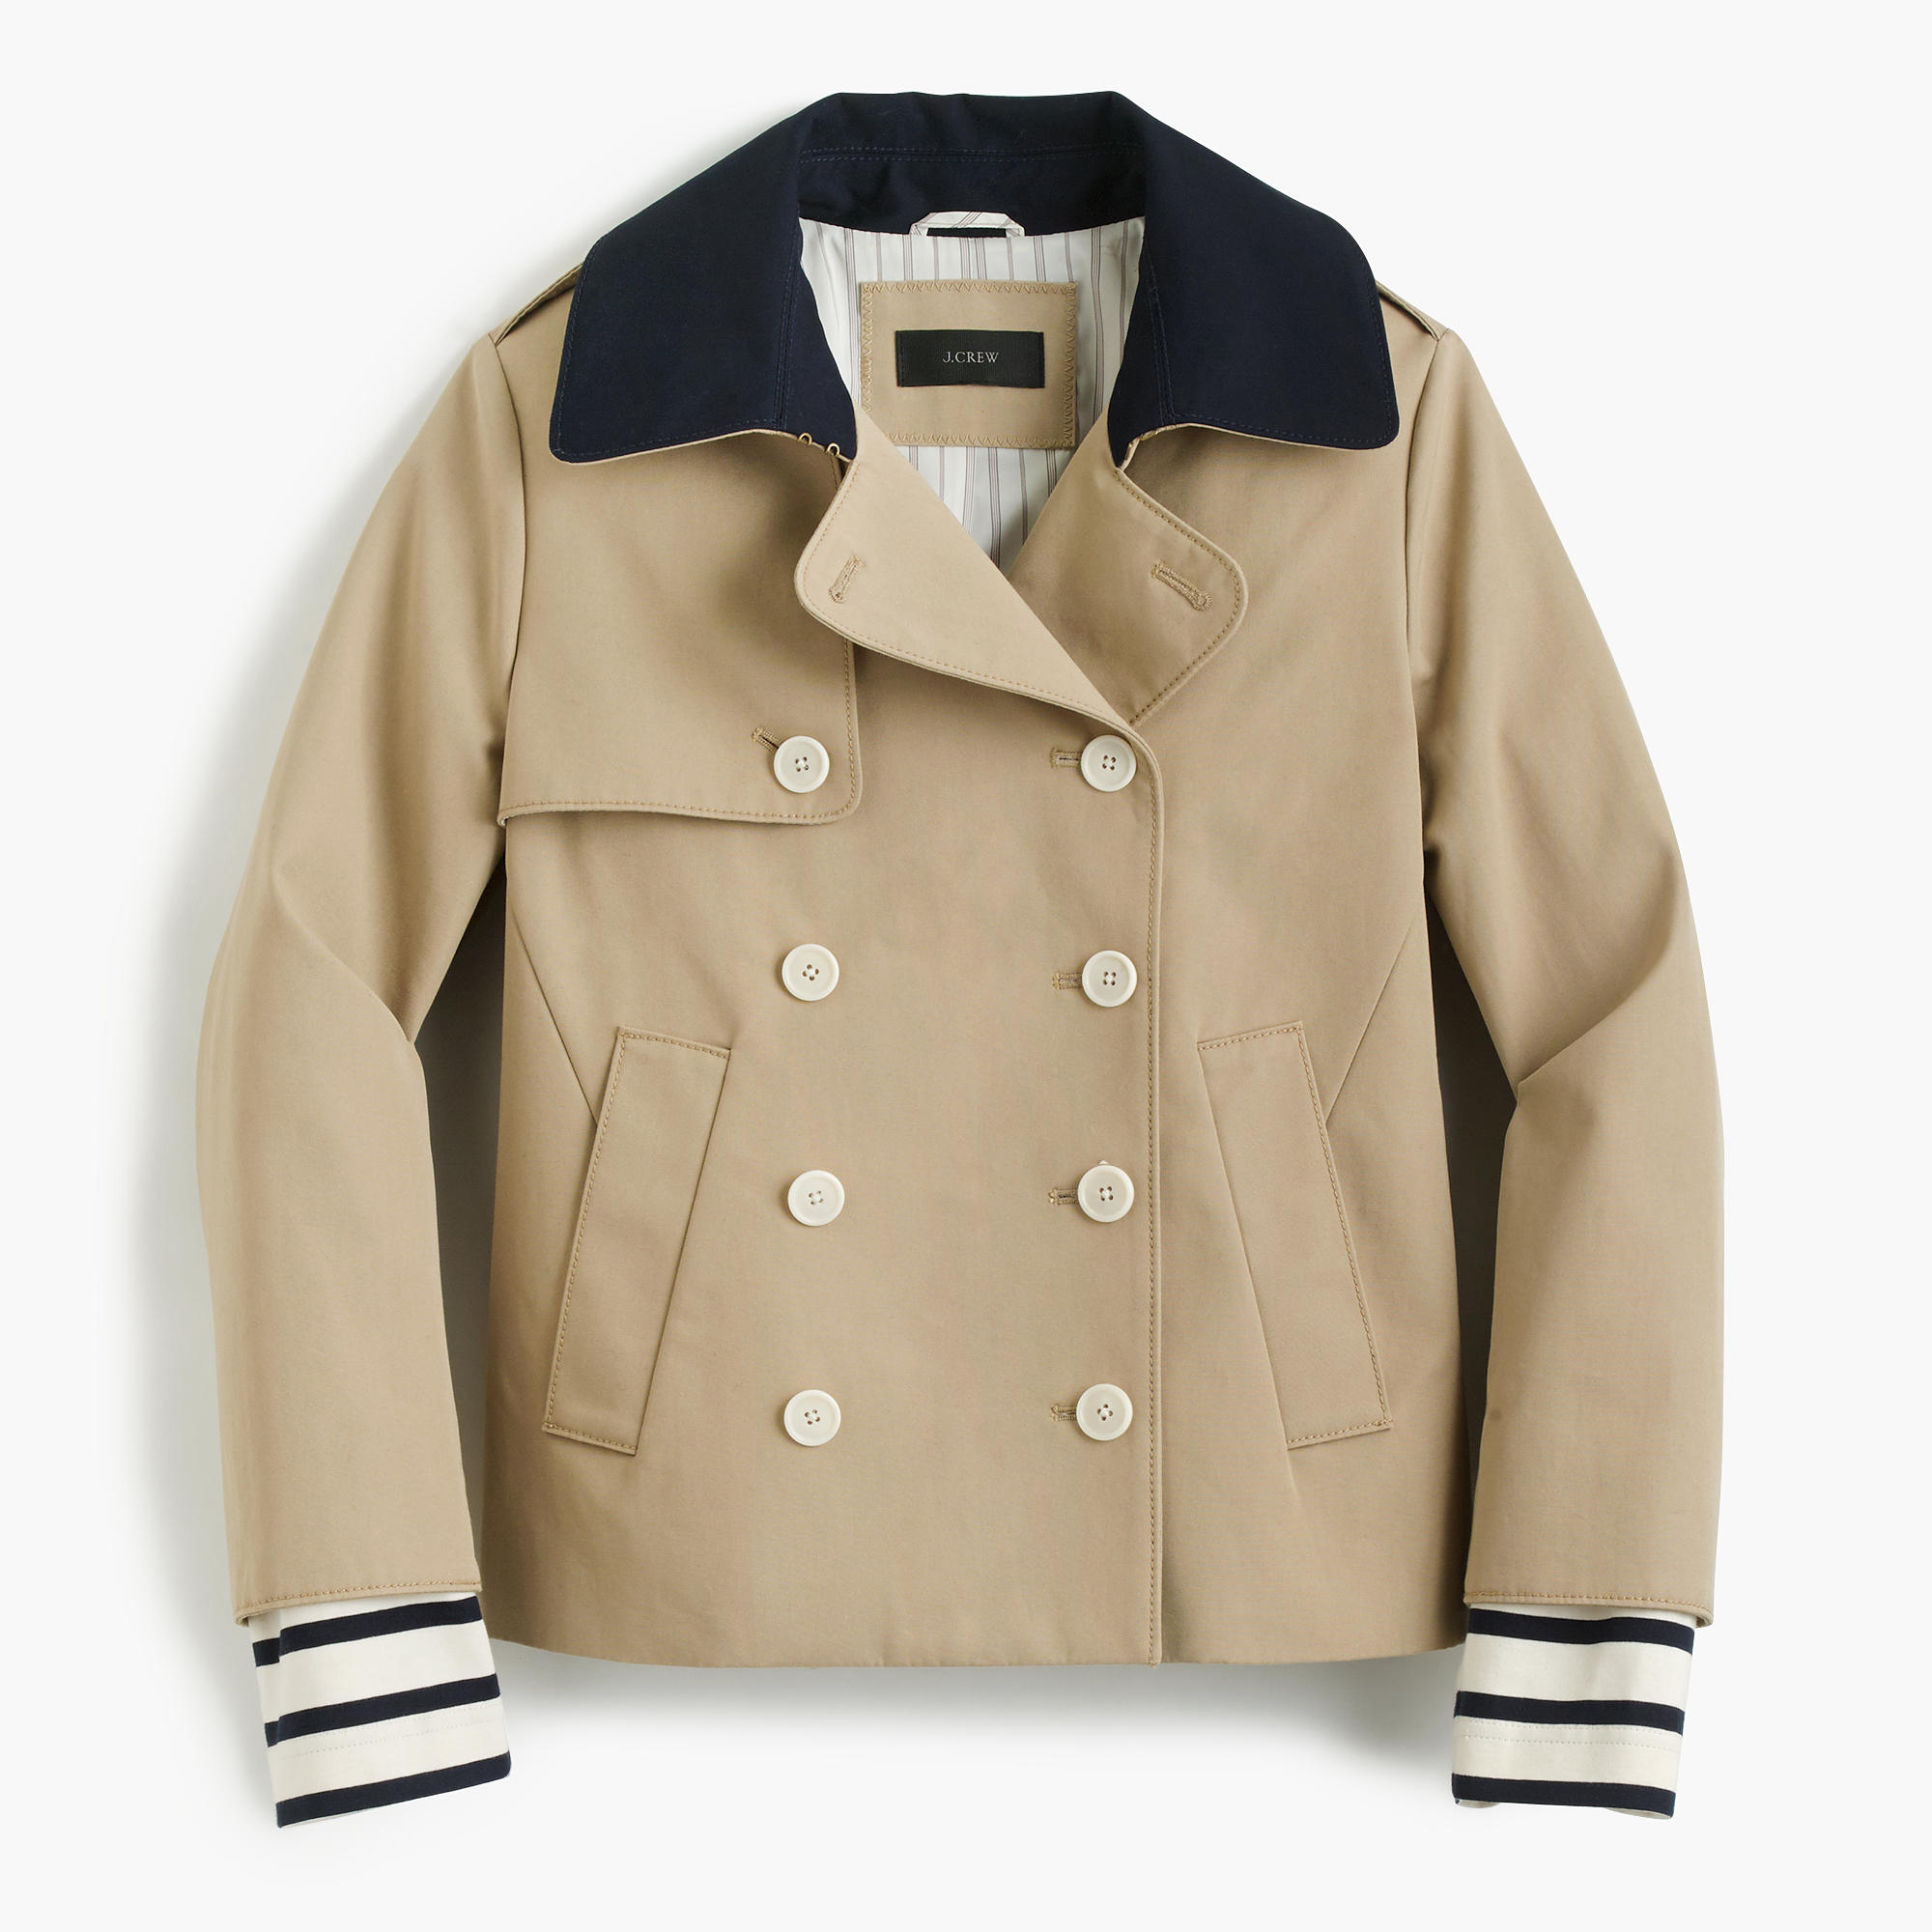 J. Crew trench—Wardrobe classic: The trench